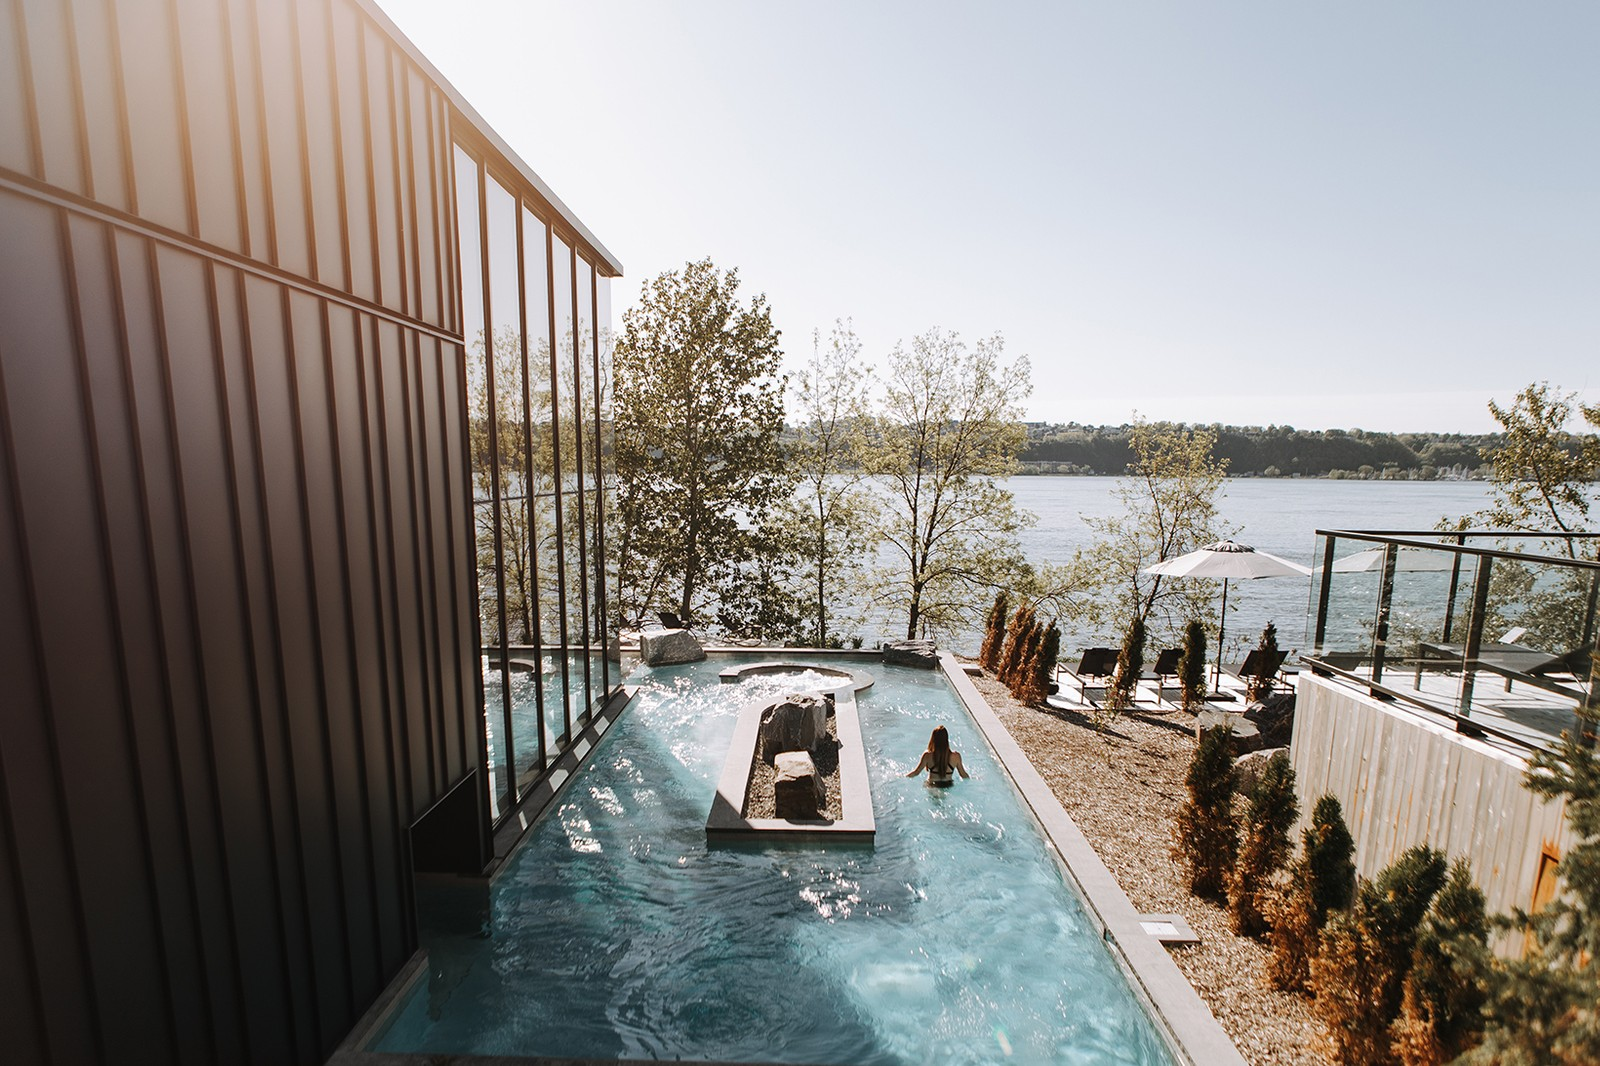 strom nordic spa quebec canada wellness health winter